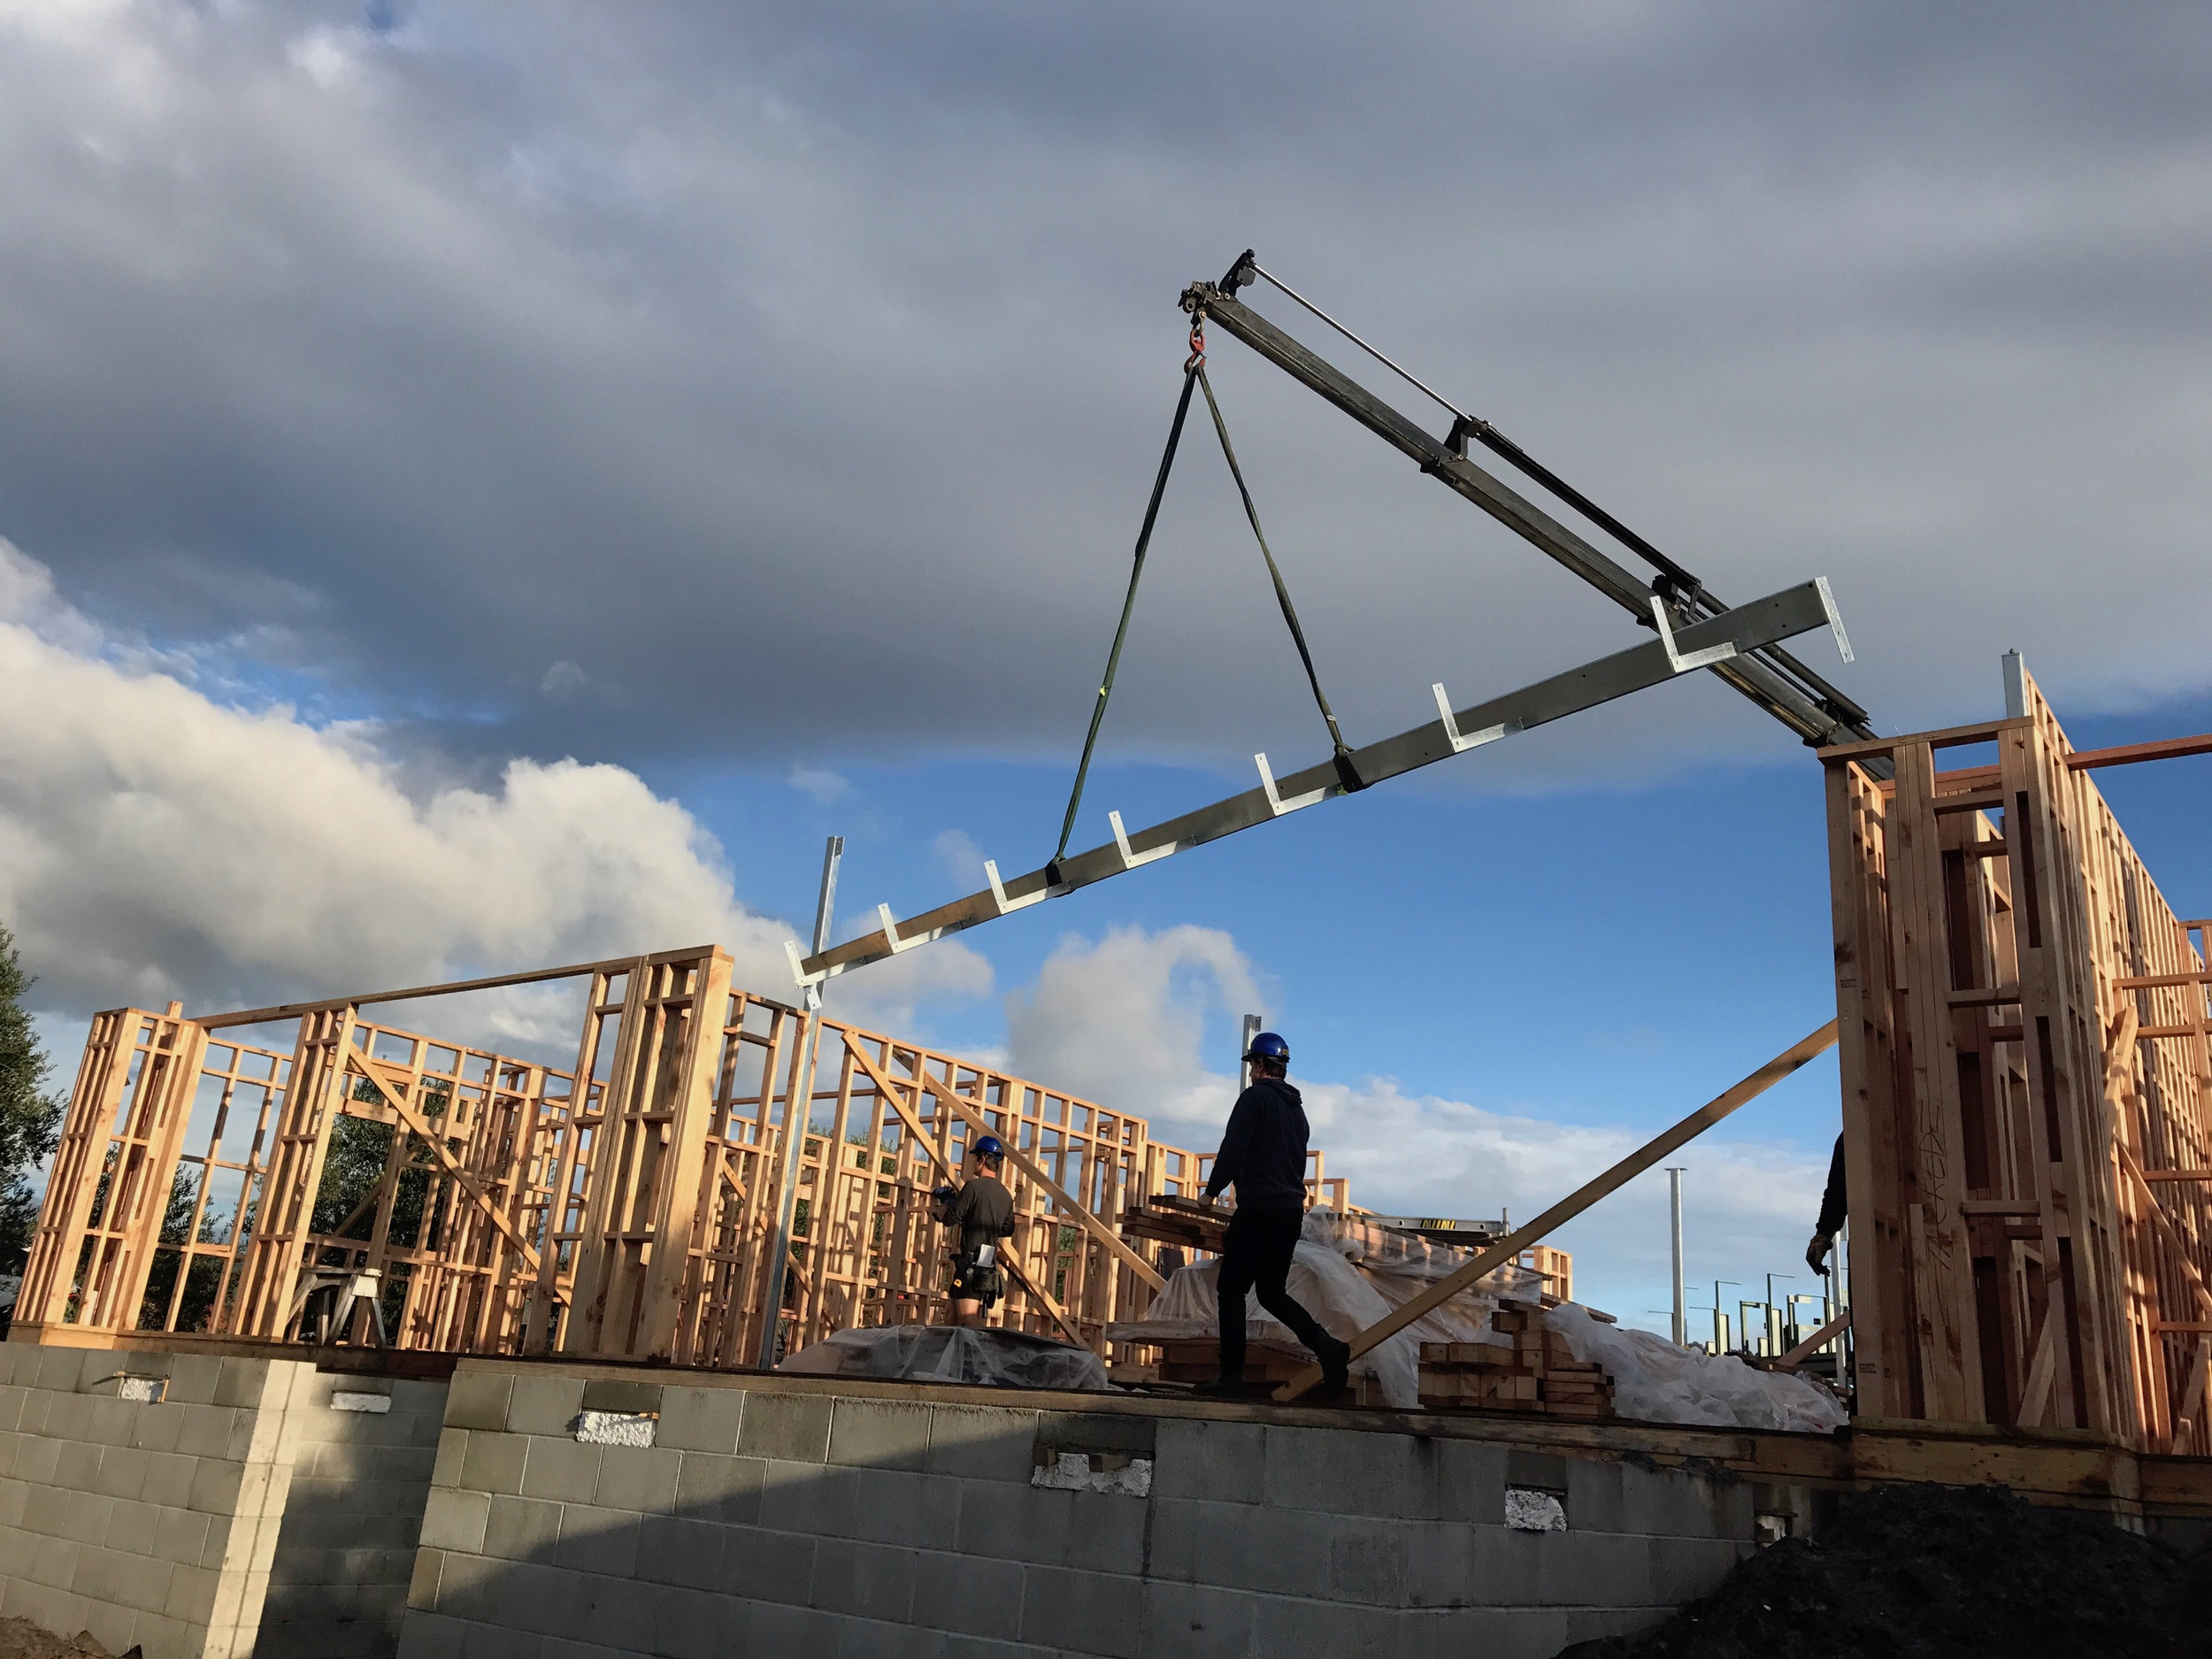 90 Degrees Construction is involved in the construction of two architecturally designed homes in Pauanui, one recently finished (below) and the other expected to be completed by next April.